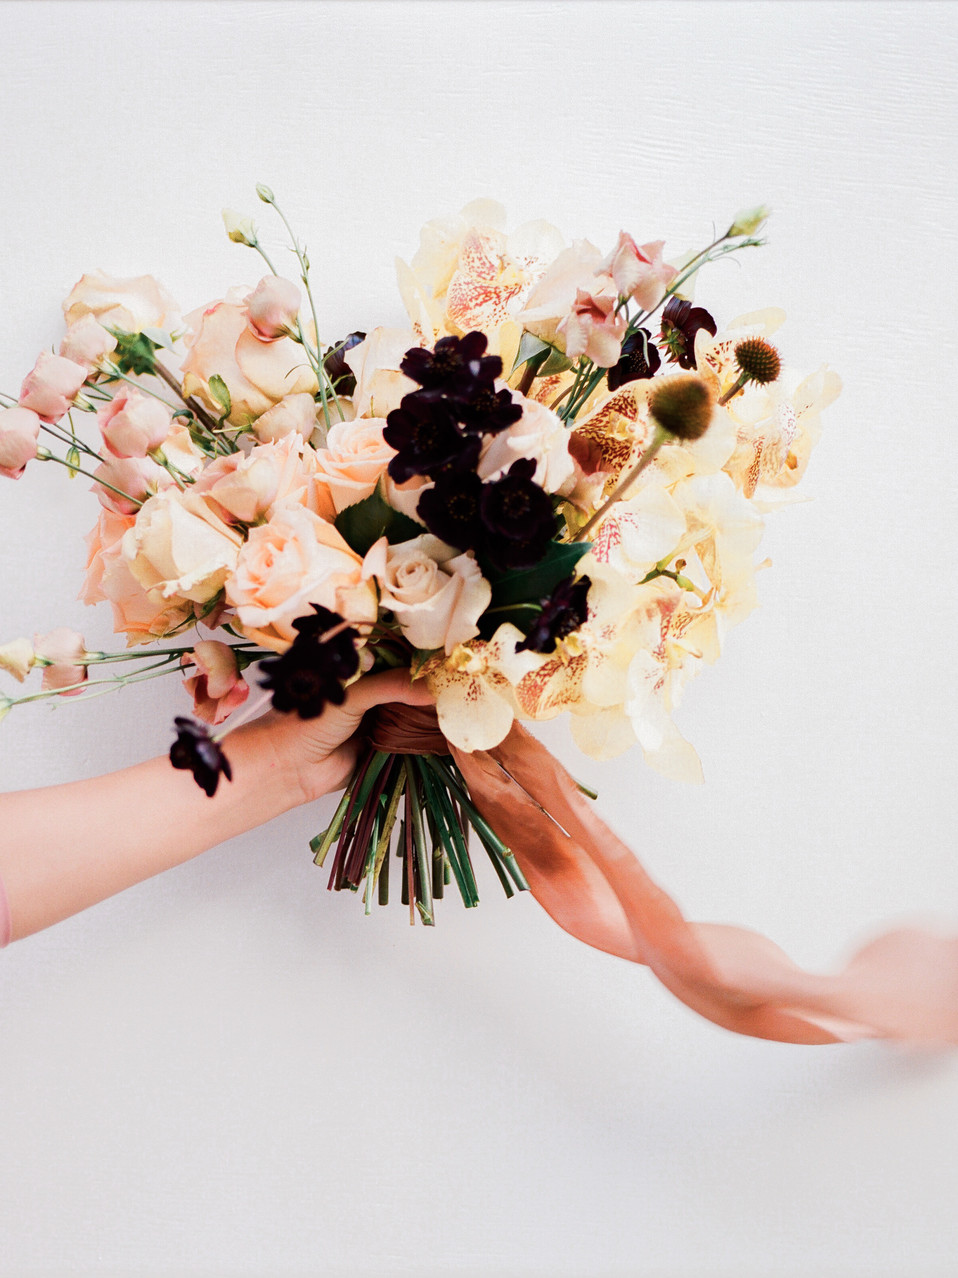 Sorores | Luxury Florist & Planner in London & The Cotswolds